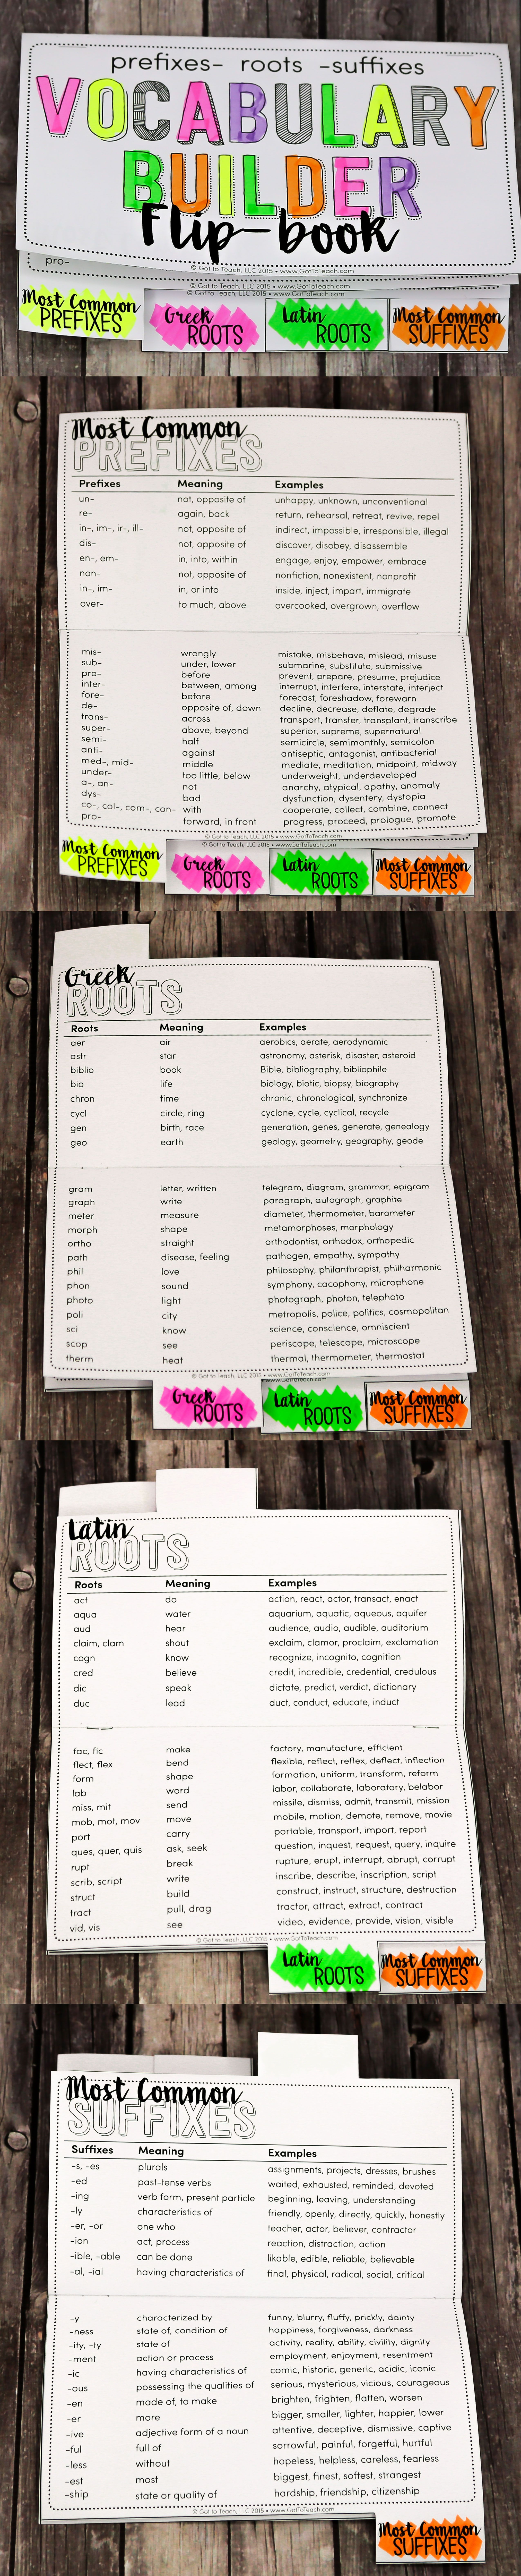 FREE Vocabulary Builder Flip-book! | Homeschool ELA